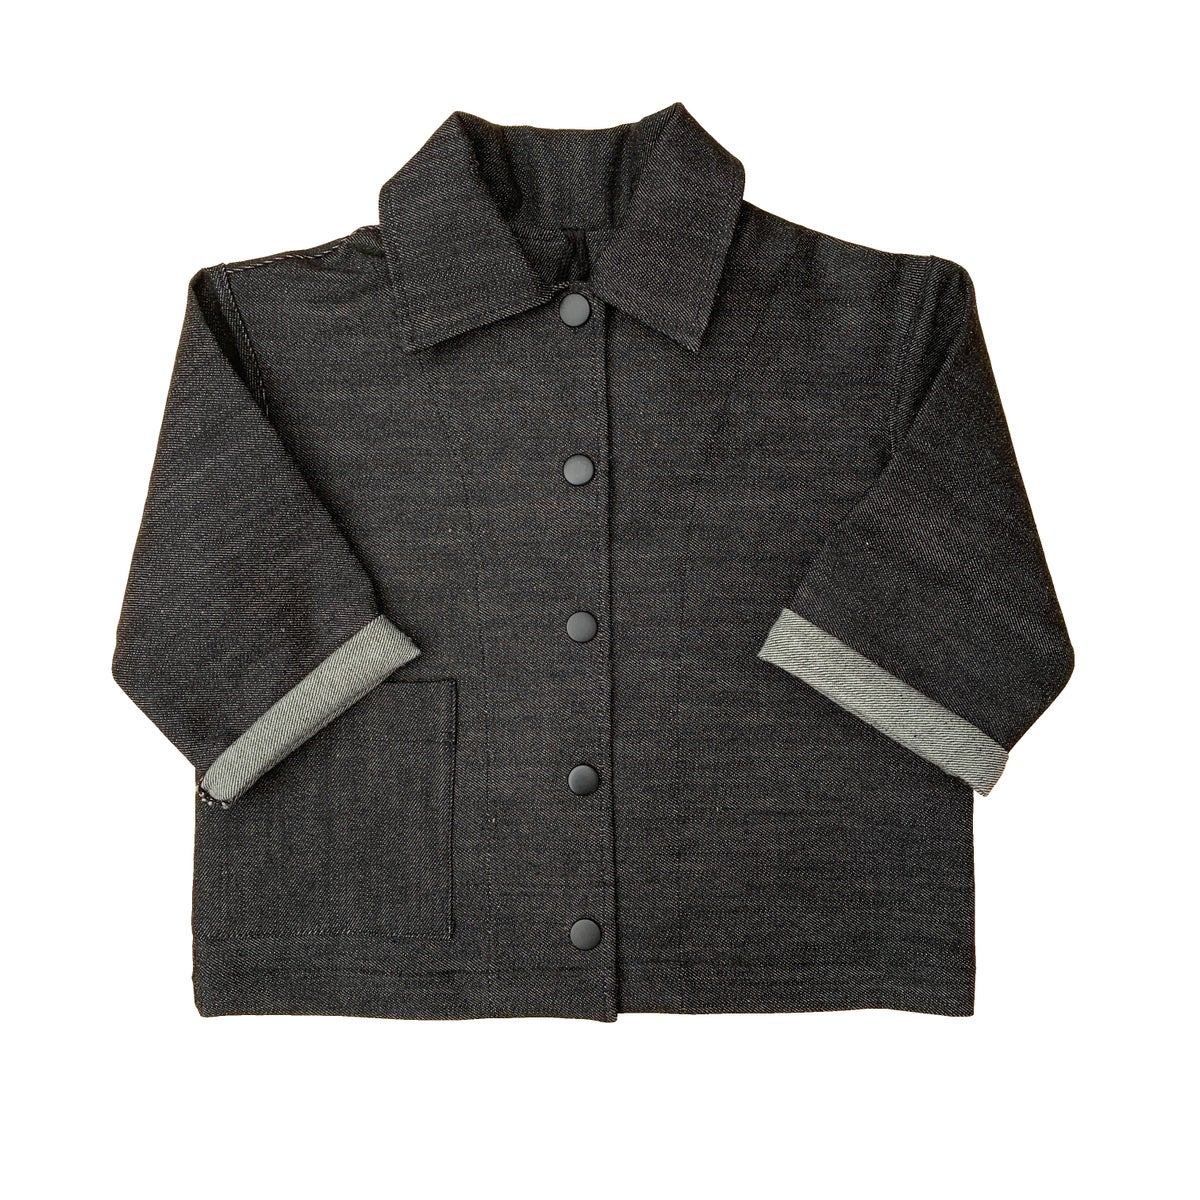 Image of Pippins - Denim jacket. Raw Black.